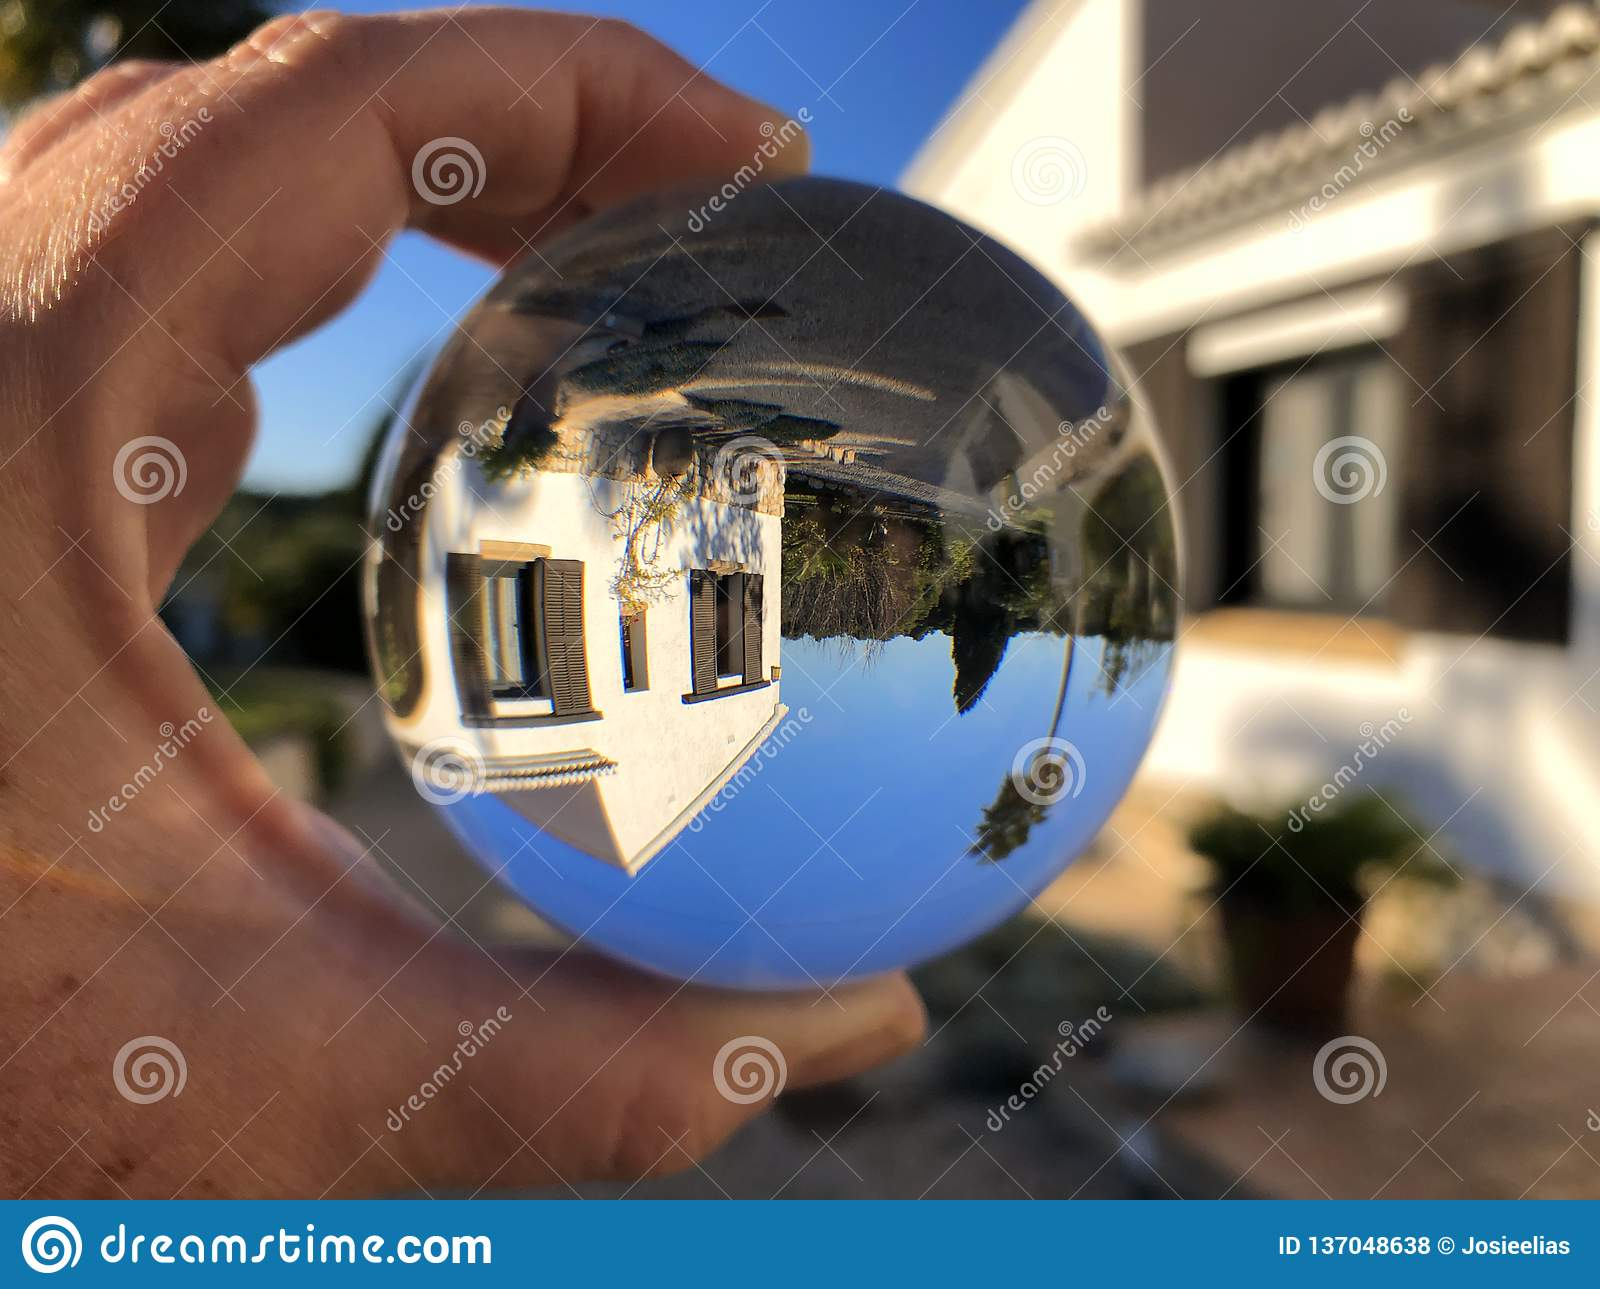 Creative concept, crystal ball and dream home